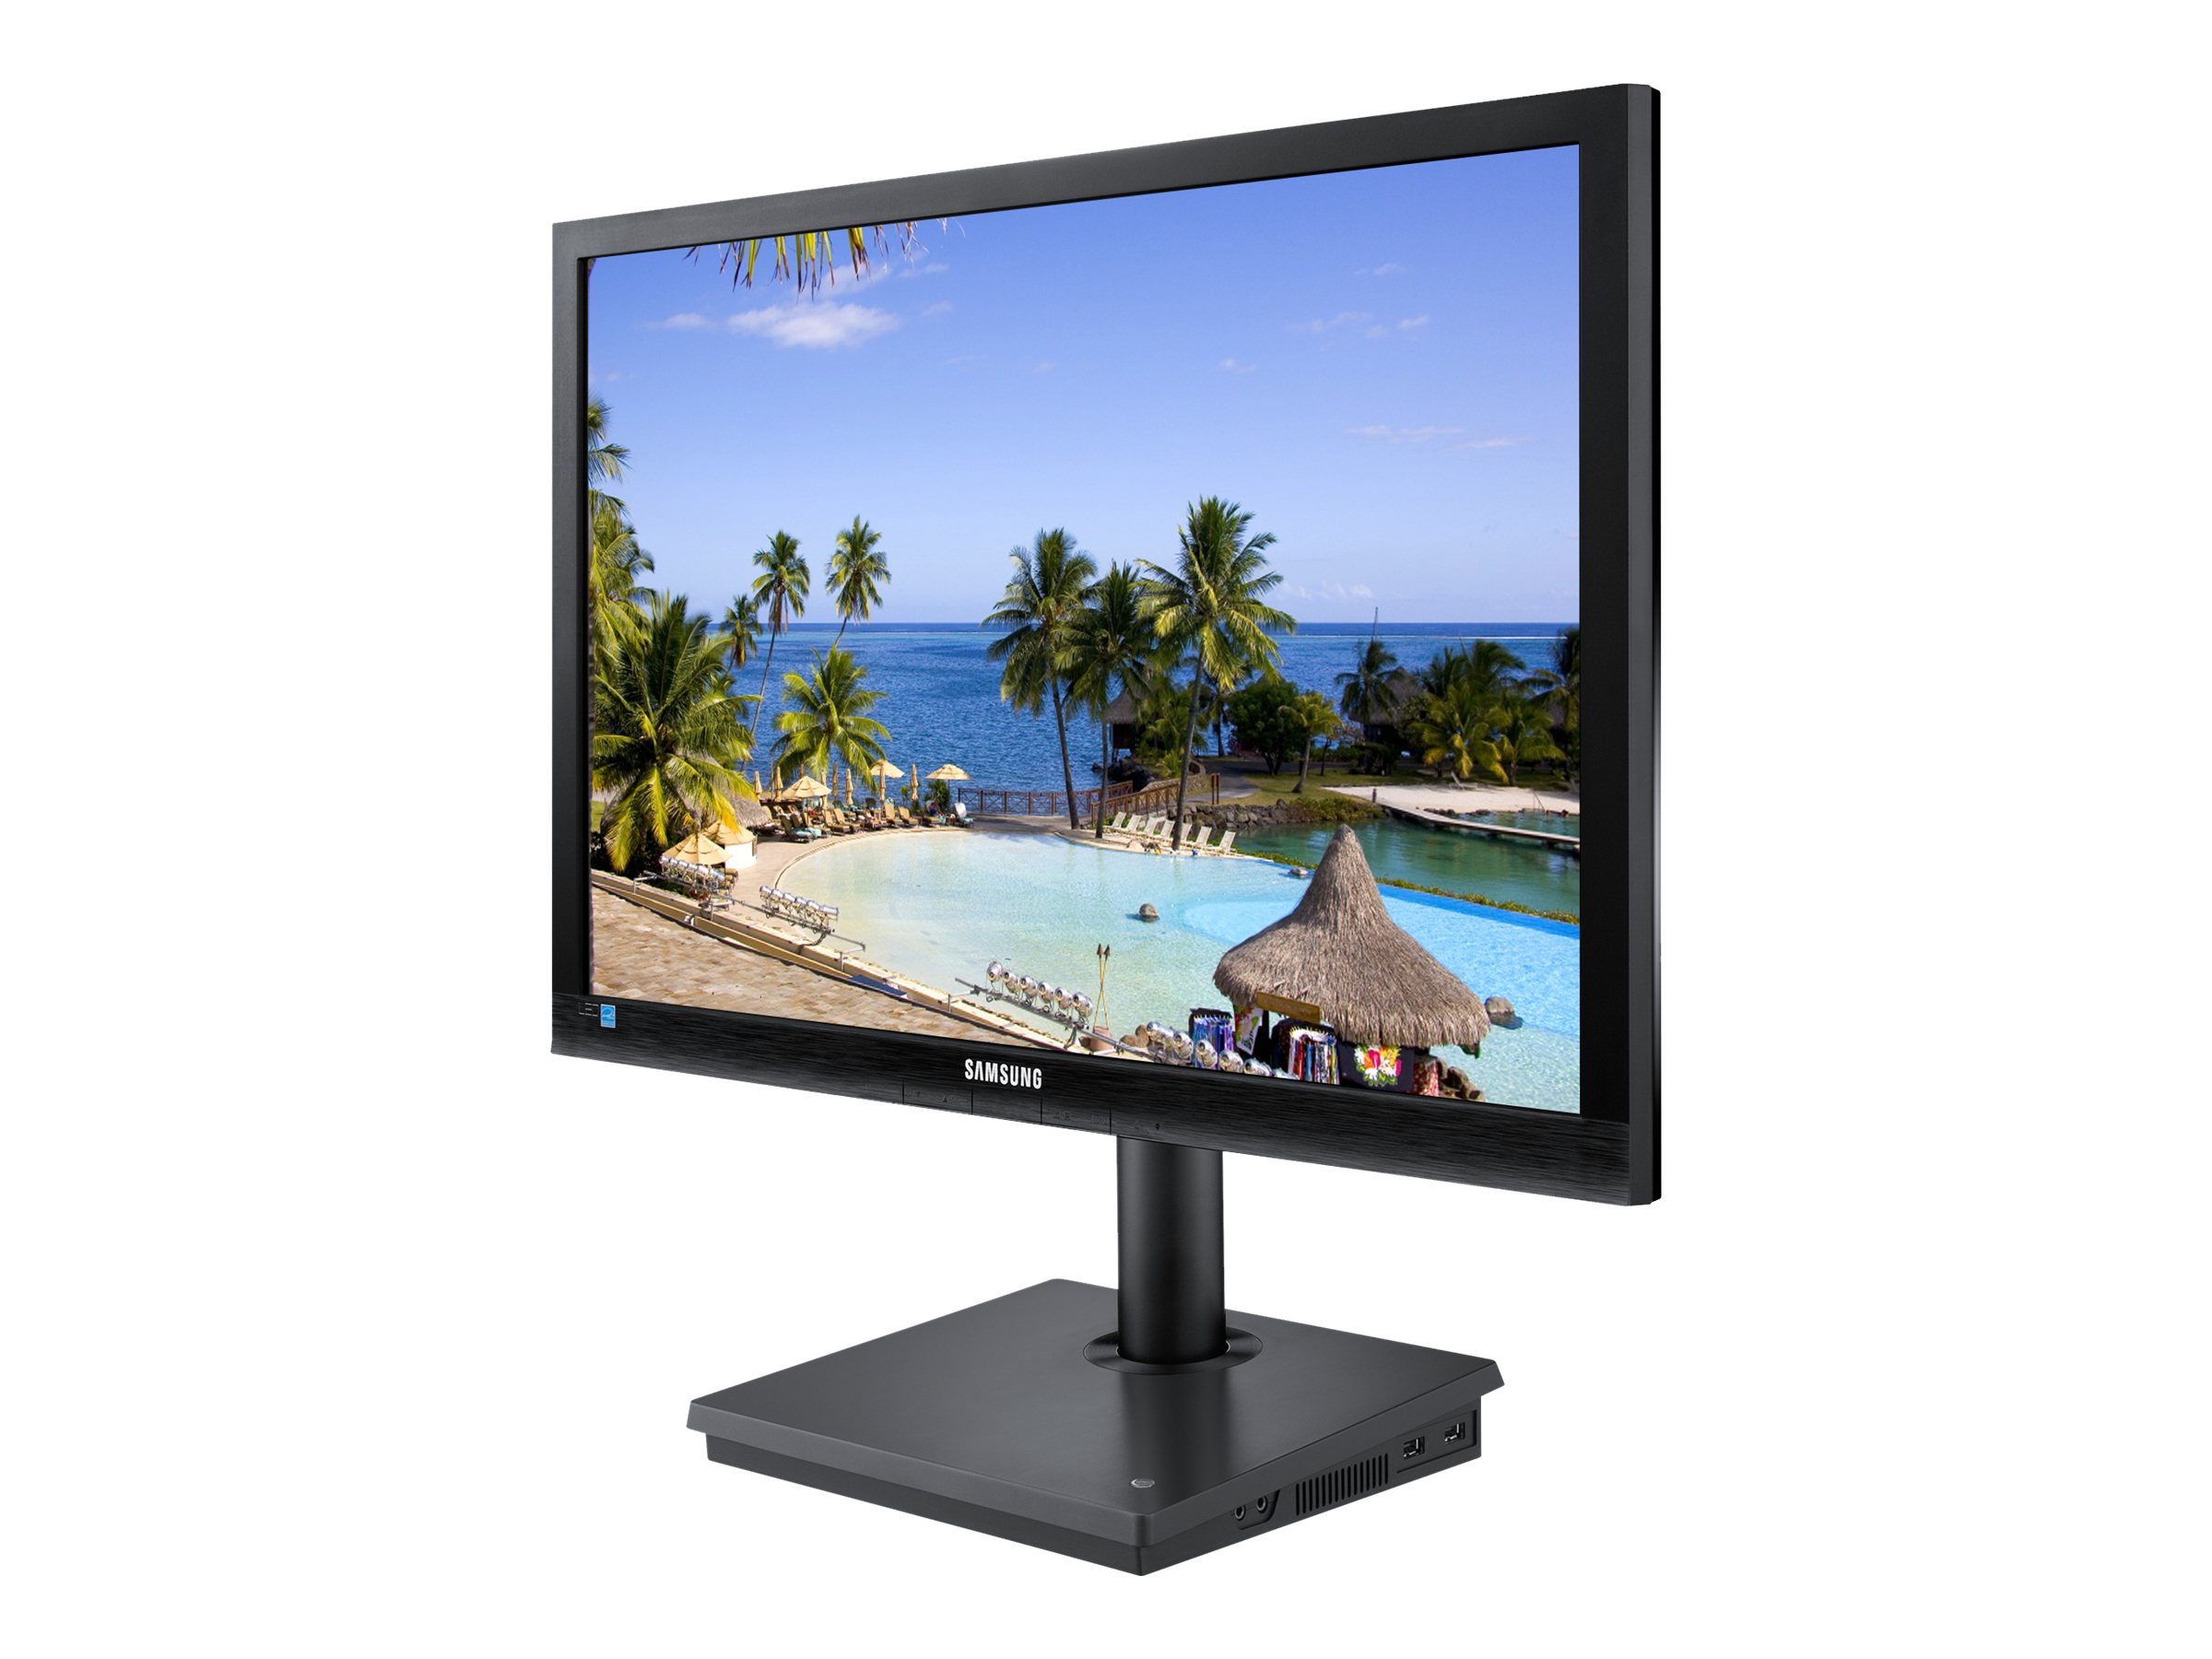 Samsung TS190C Thin Client Embedded Citrix 19 LED LCD Cloud Station AMD Ontario 1.0GHz 1GB 8GB SSD GigNIC